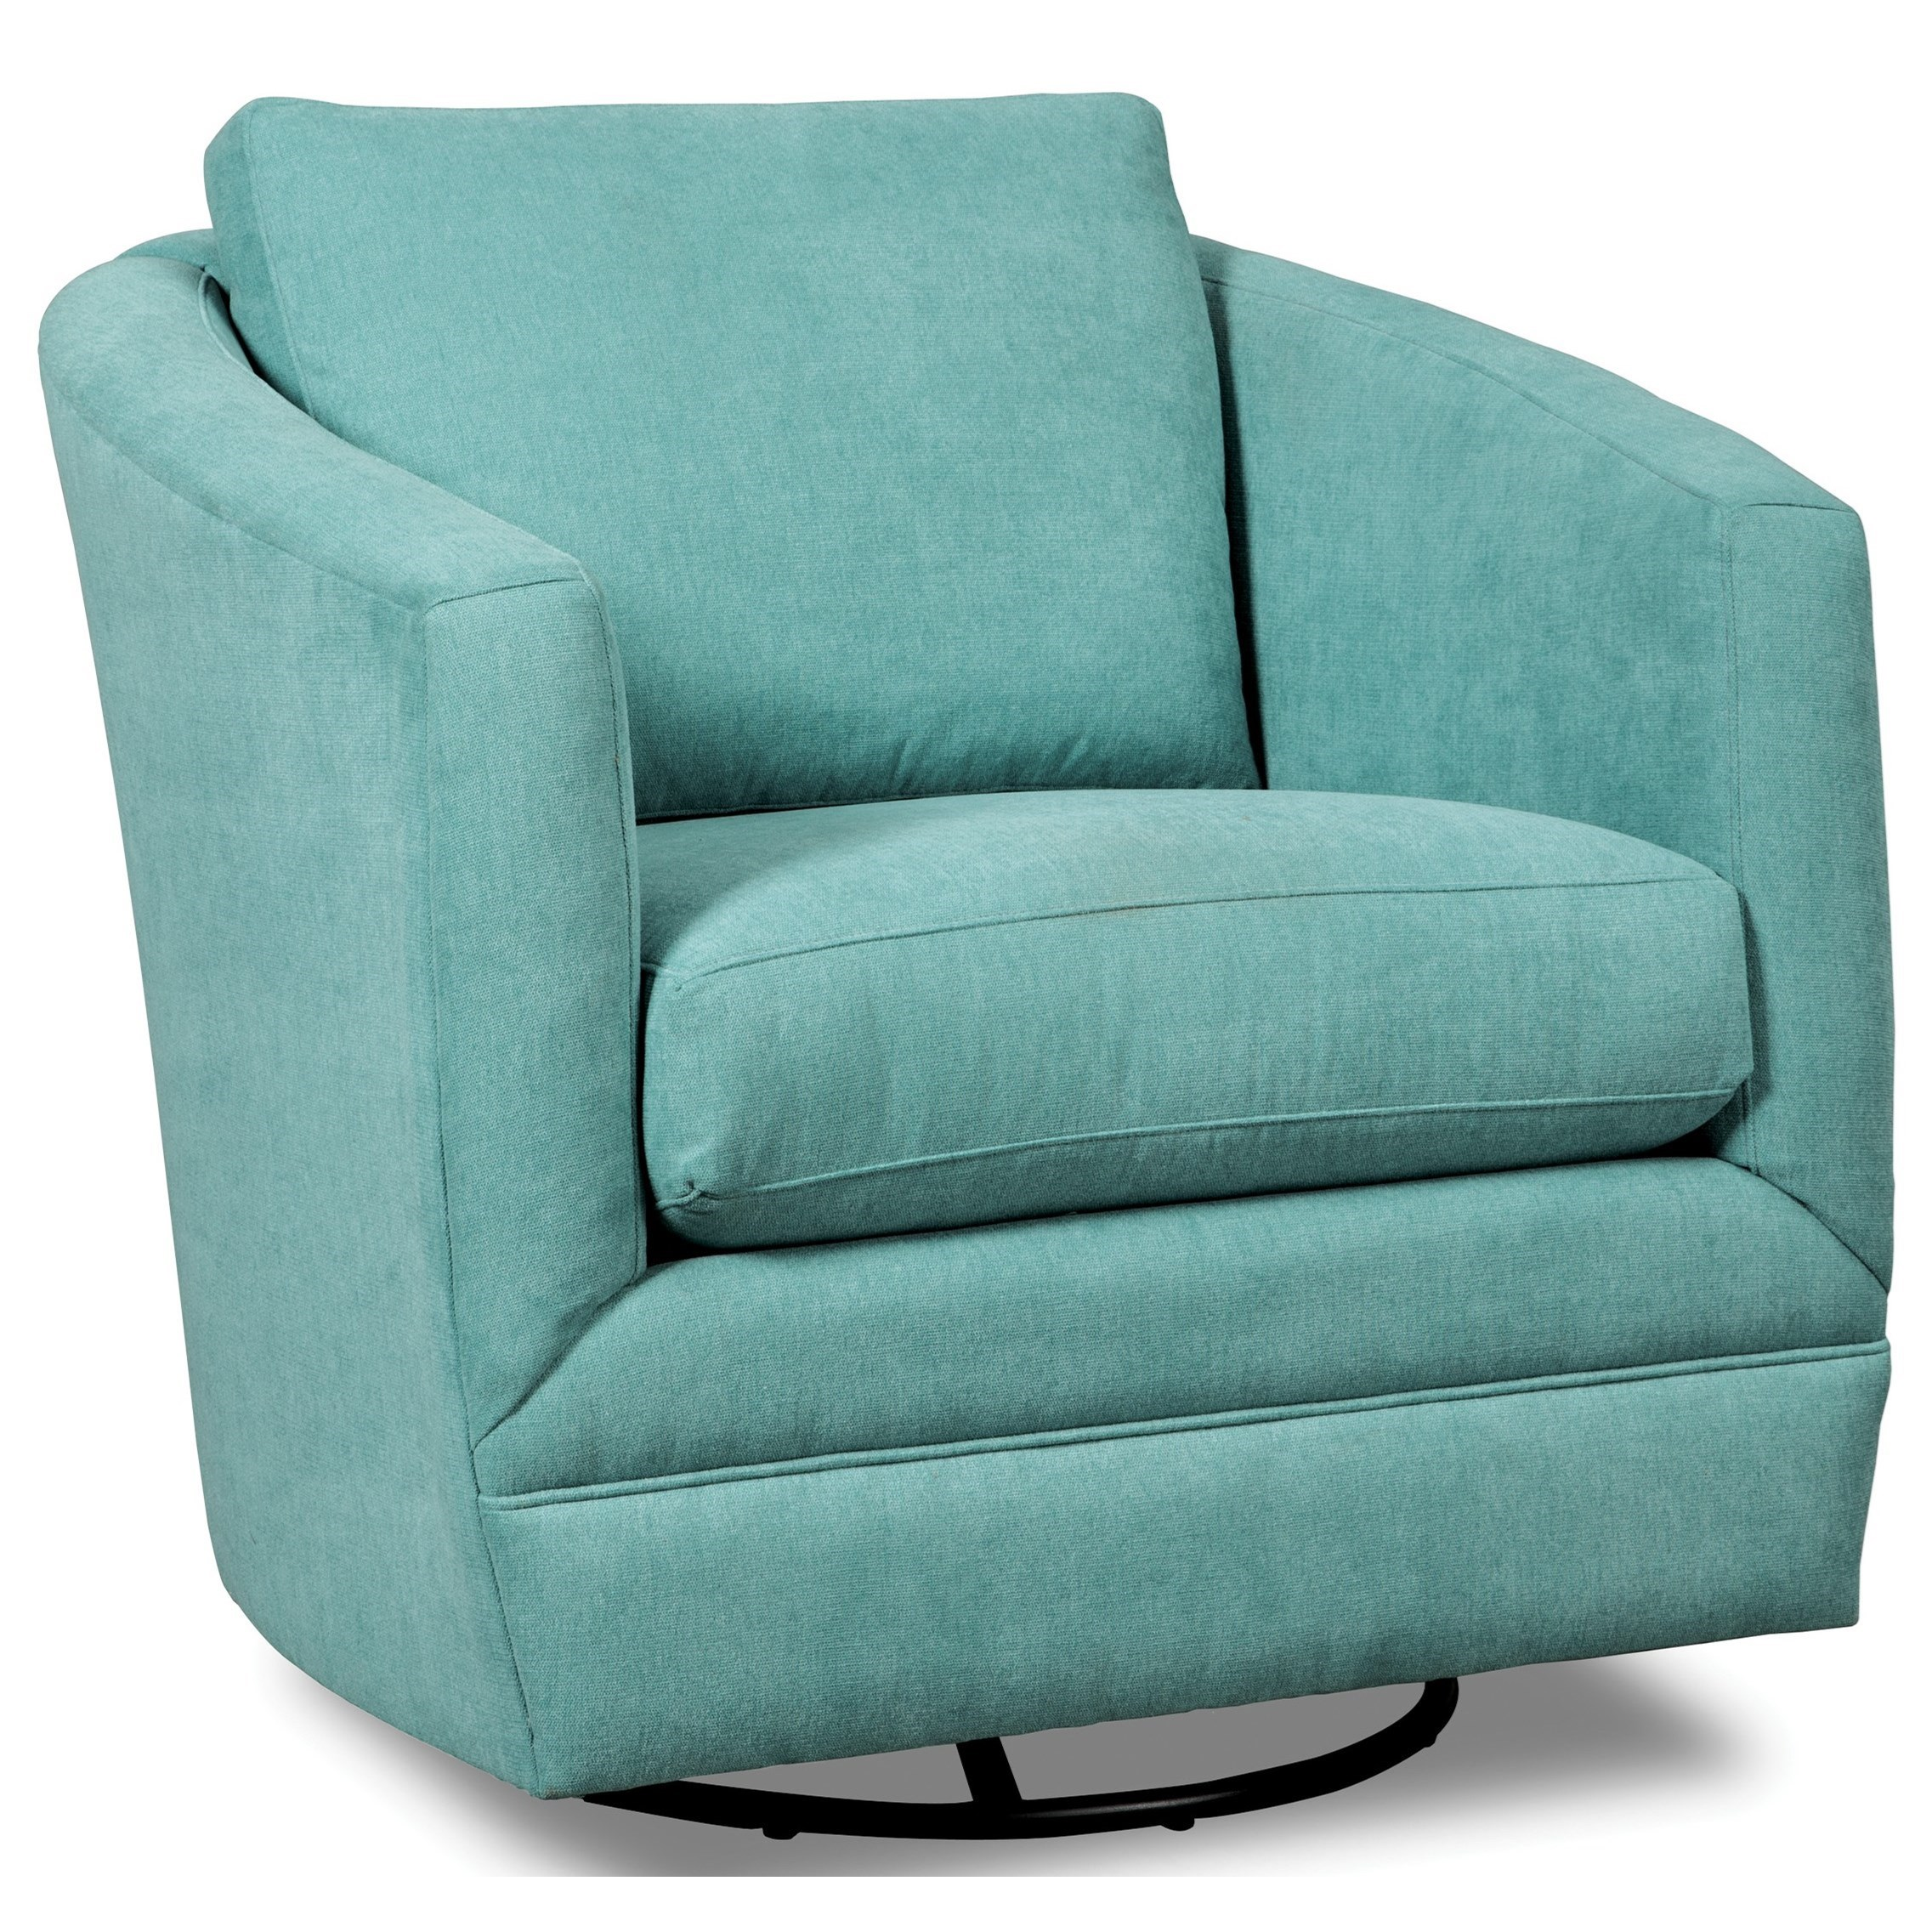 Accent Chairs Swivel Chair by Craftmaster at Bullard Furniture